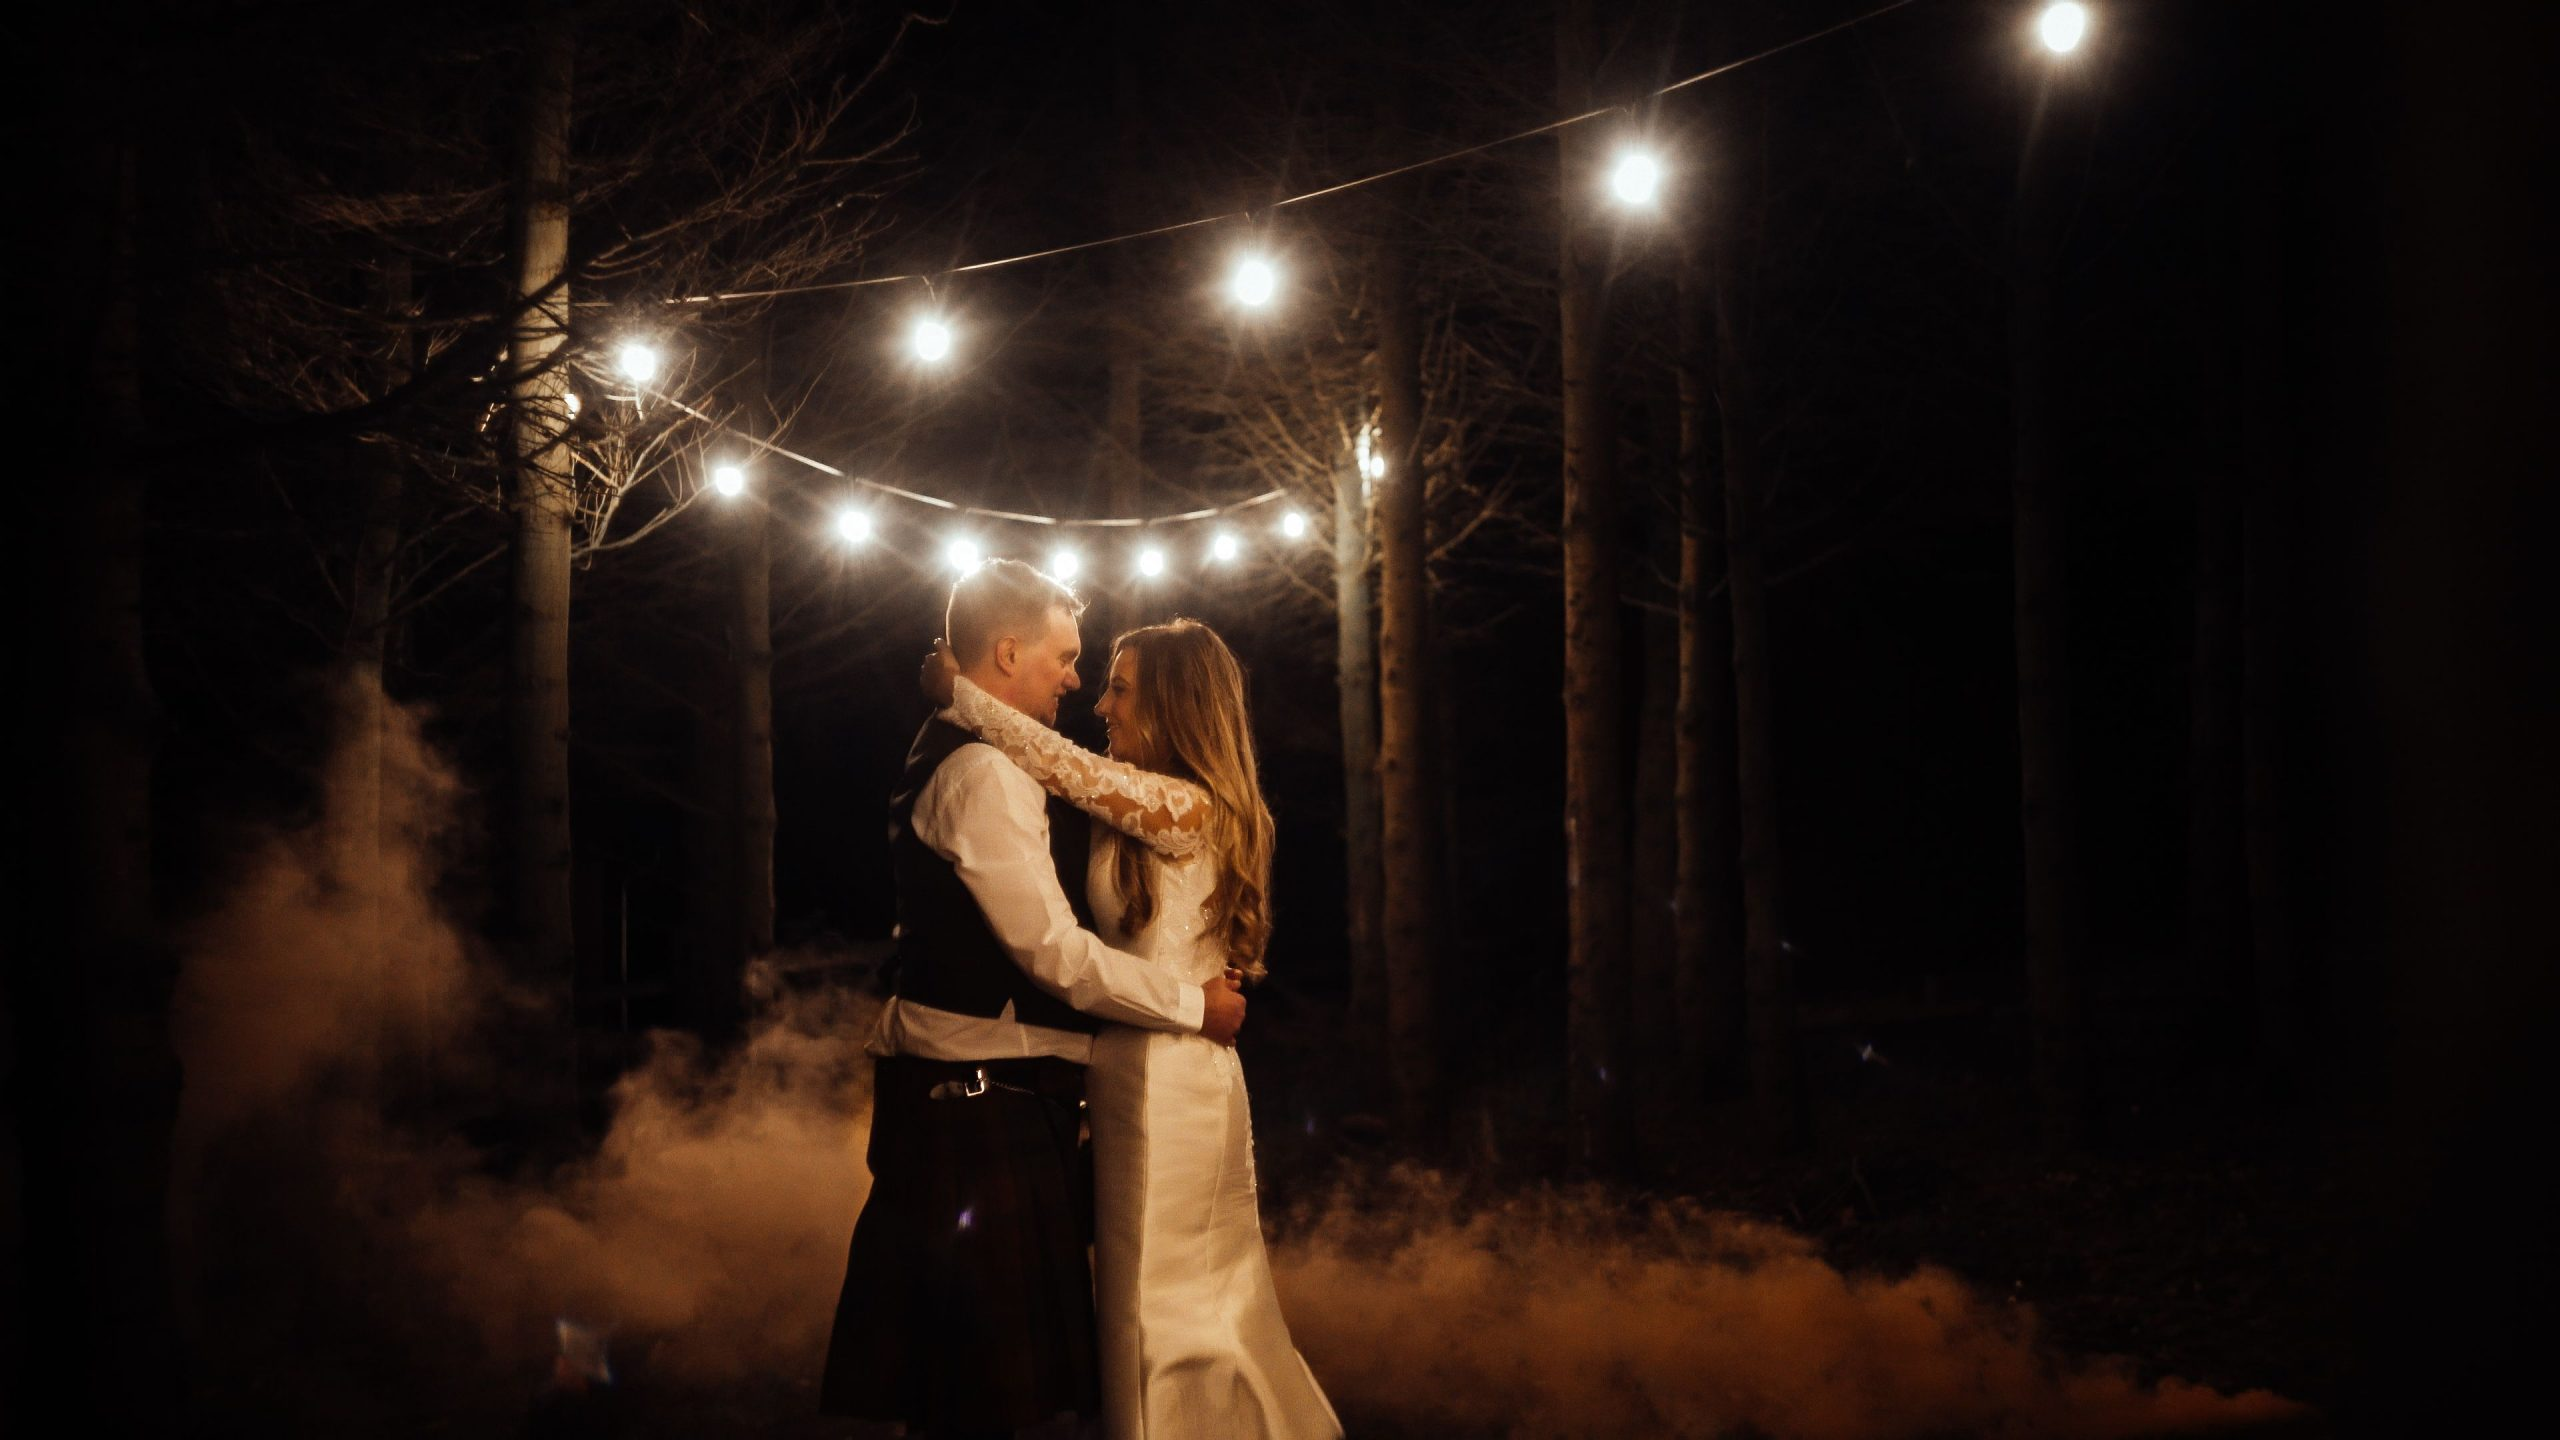 fuhave a fun wedding couple dancing in the dark